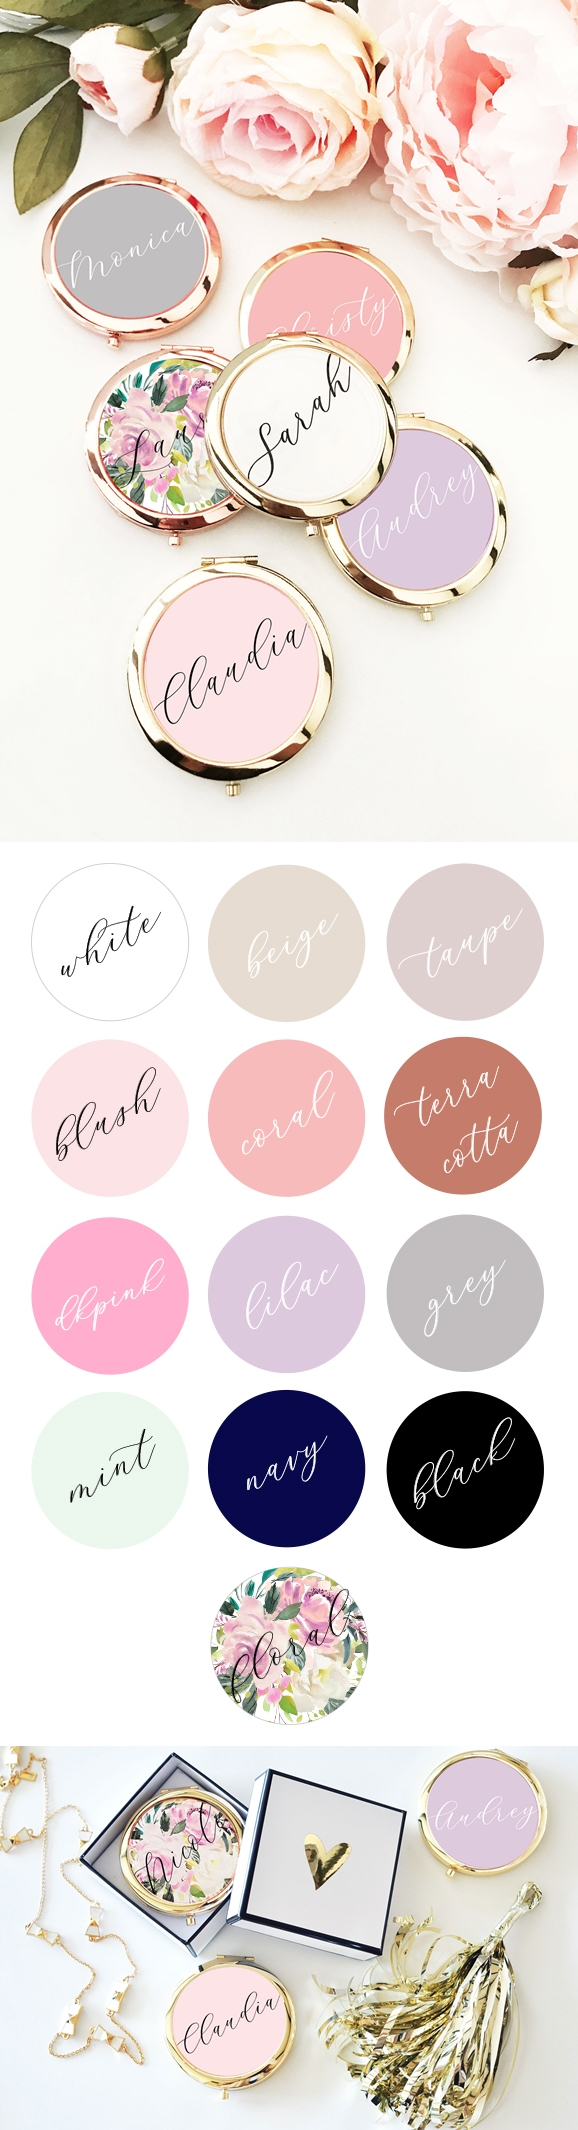 Event Blossom Personalized Color Background Compact with Script Name